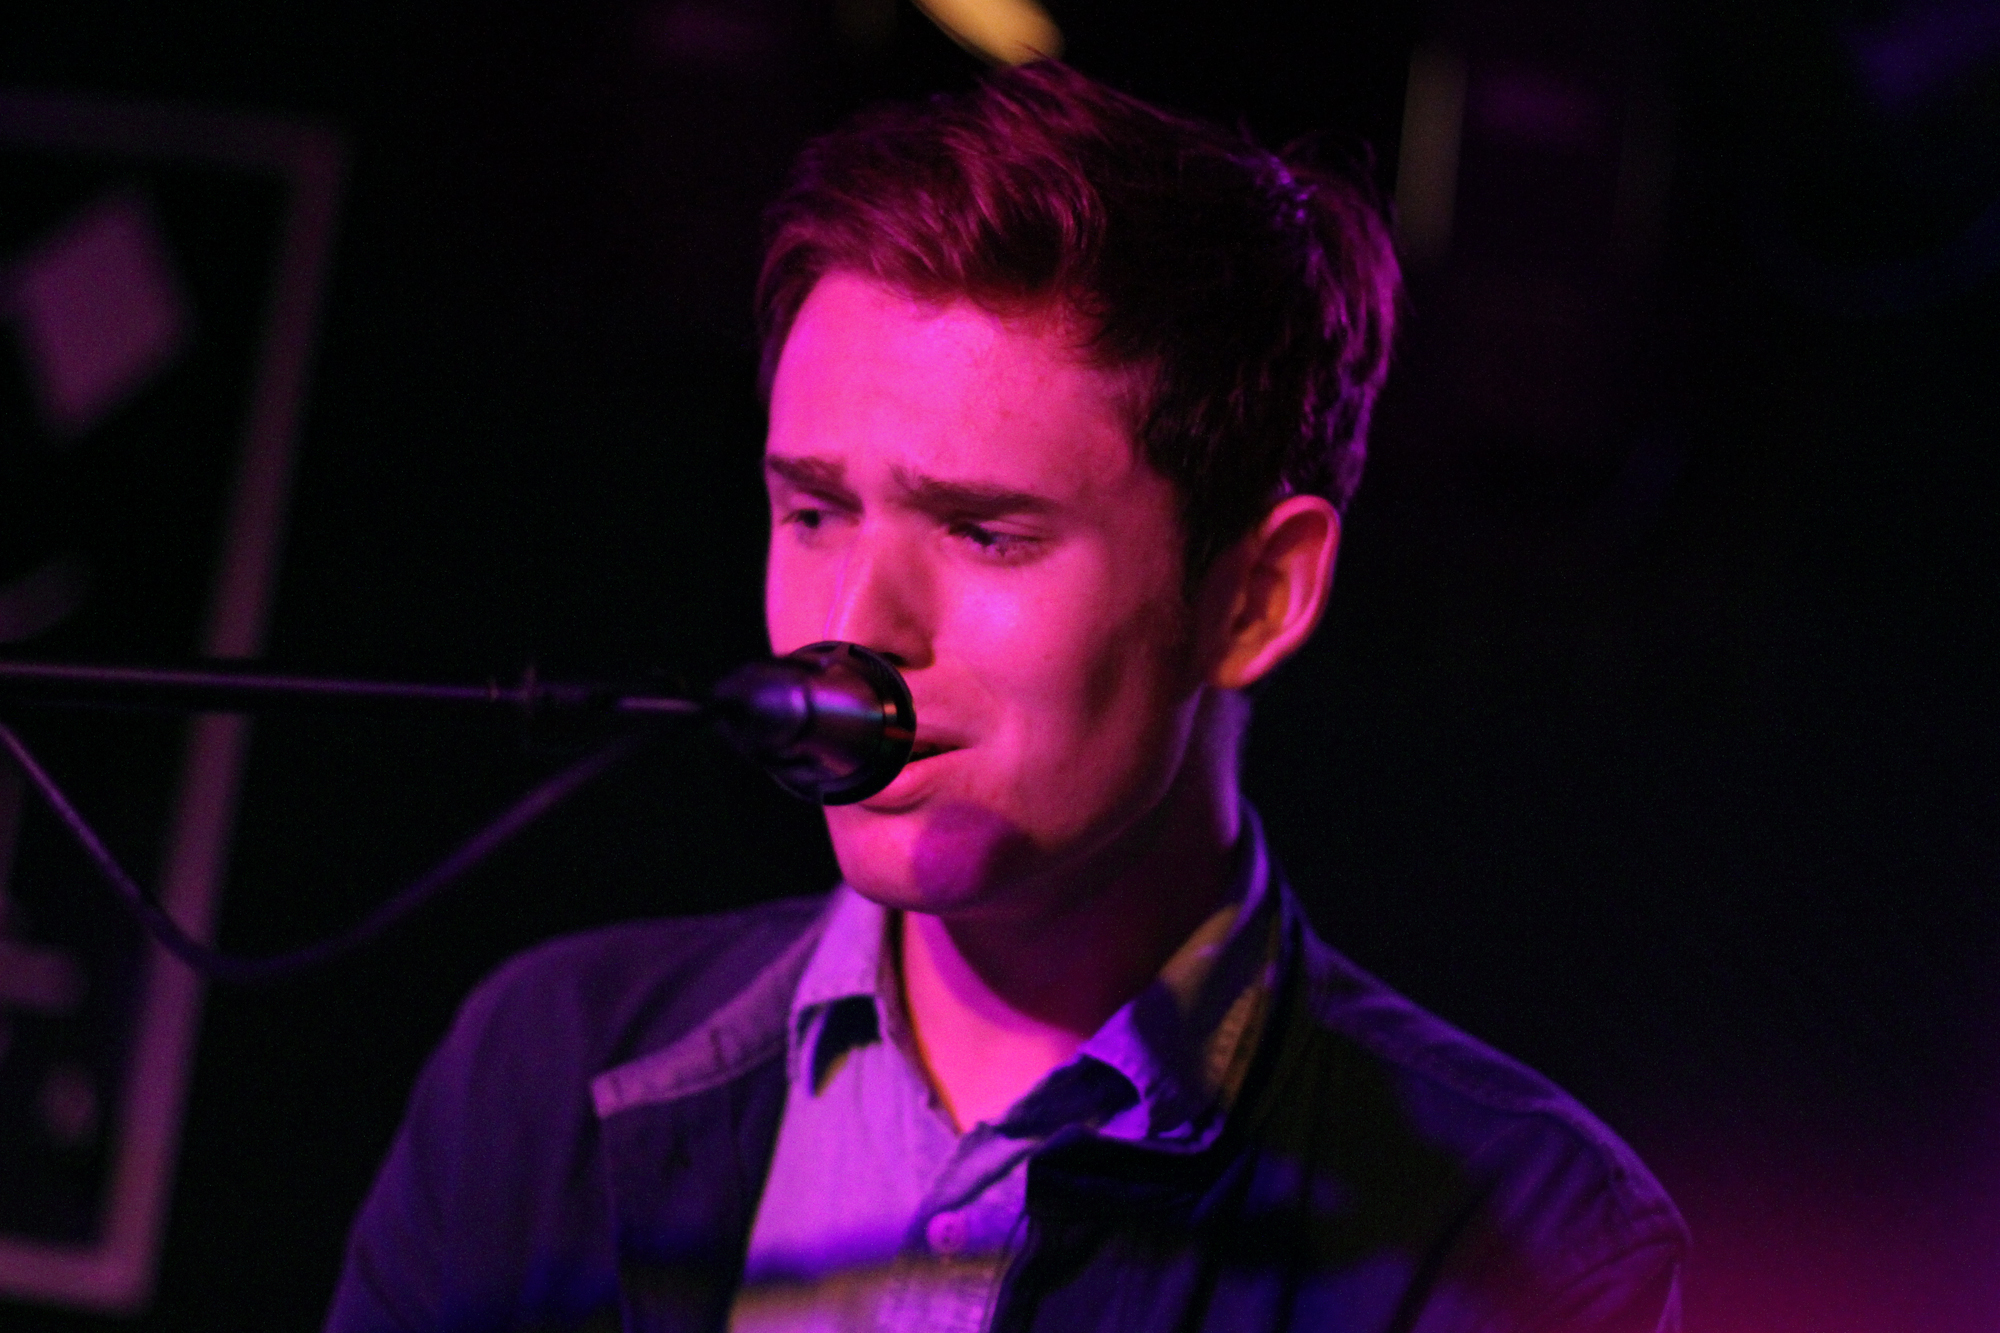 James Blake performs at Rock and Roll Hotel in Washington, D.C. on May 8, 2011.